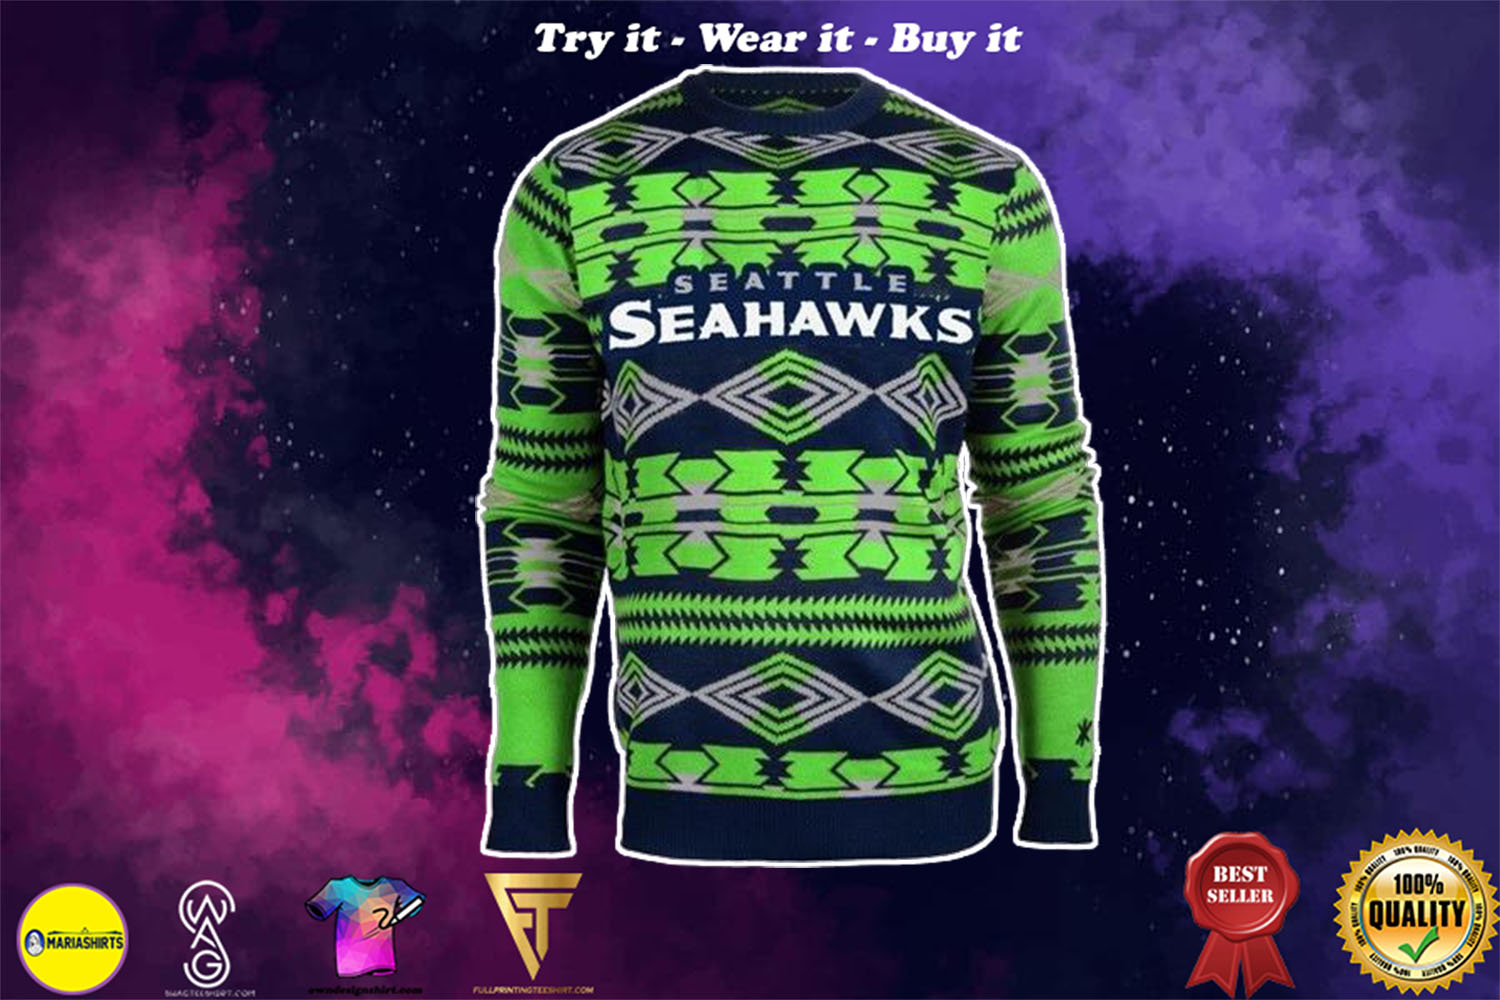 [special edition] seattle seahawks aztec print ugly christmas sweater - maria